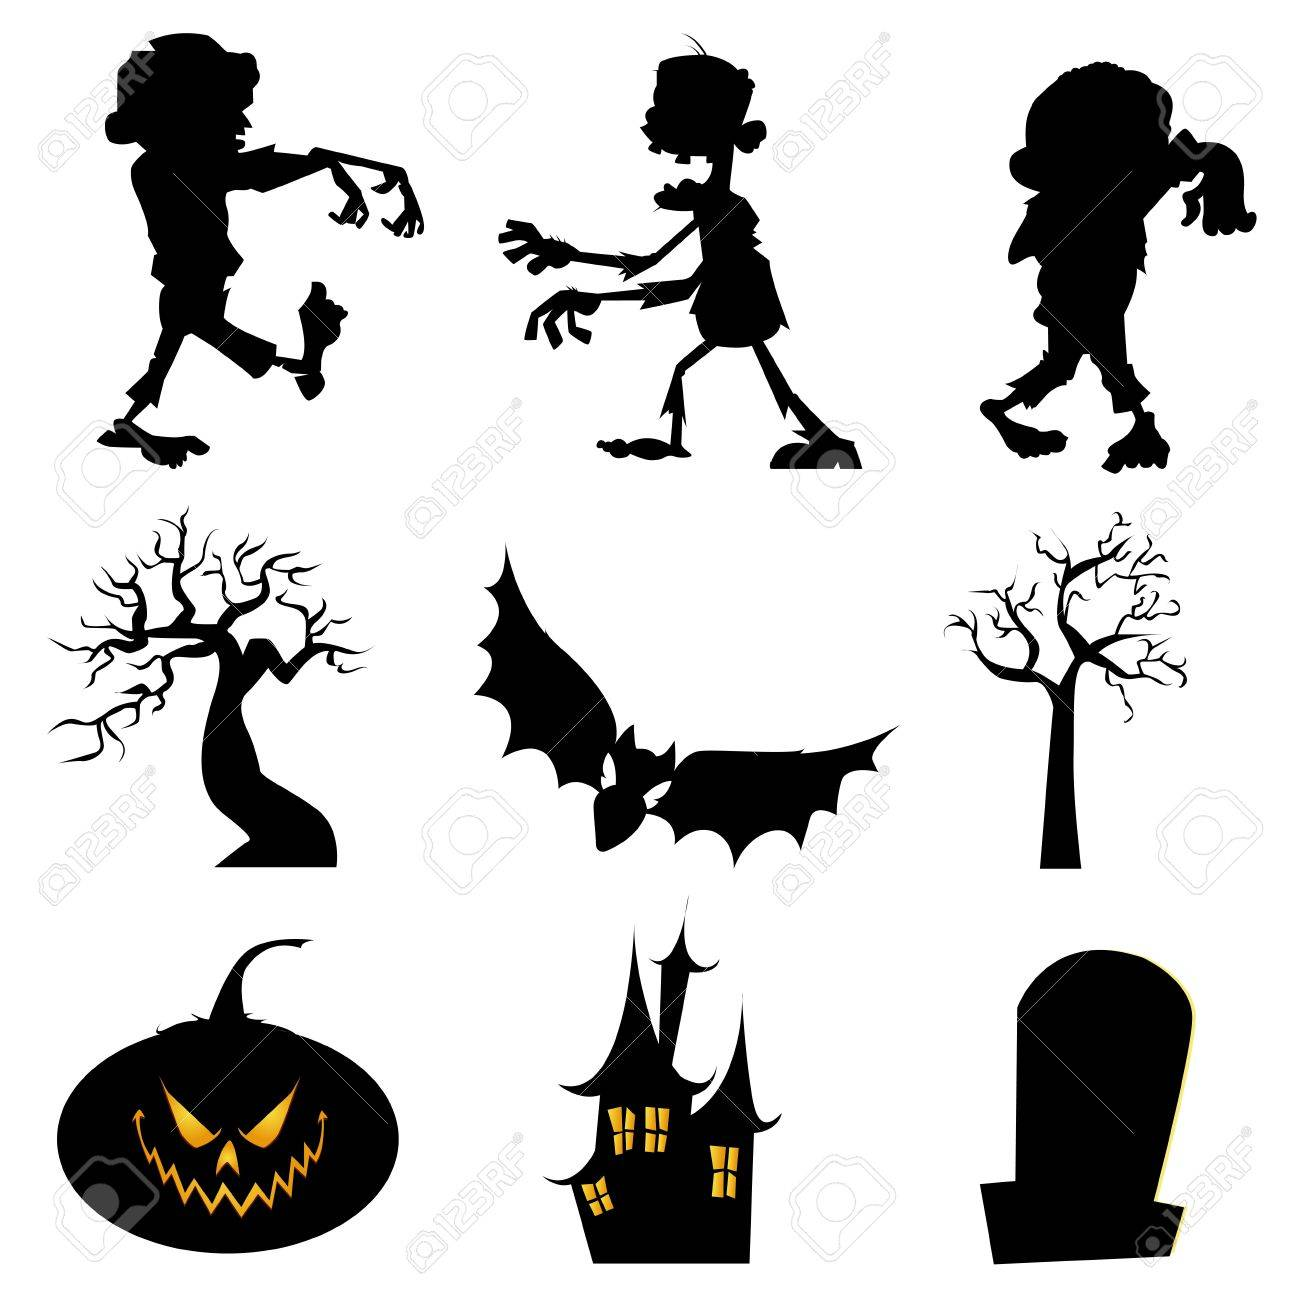 Zombie Silhouette Clipart